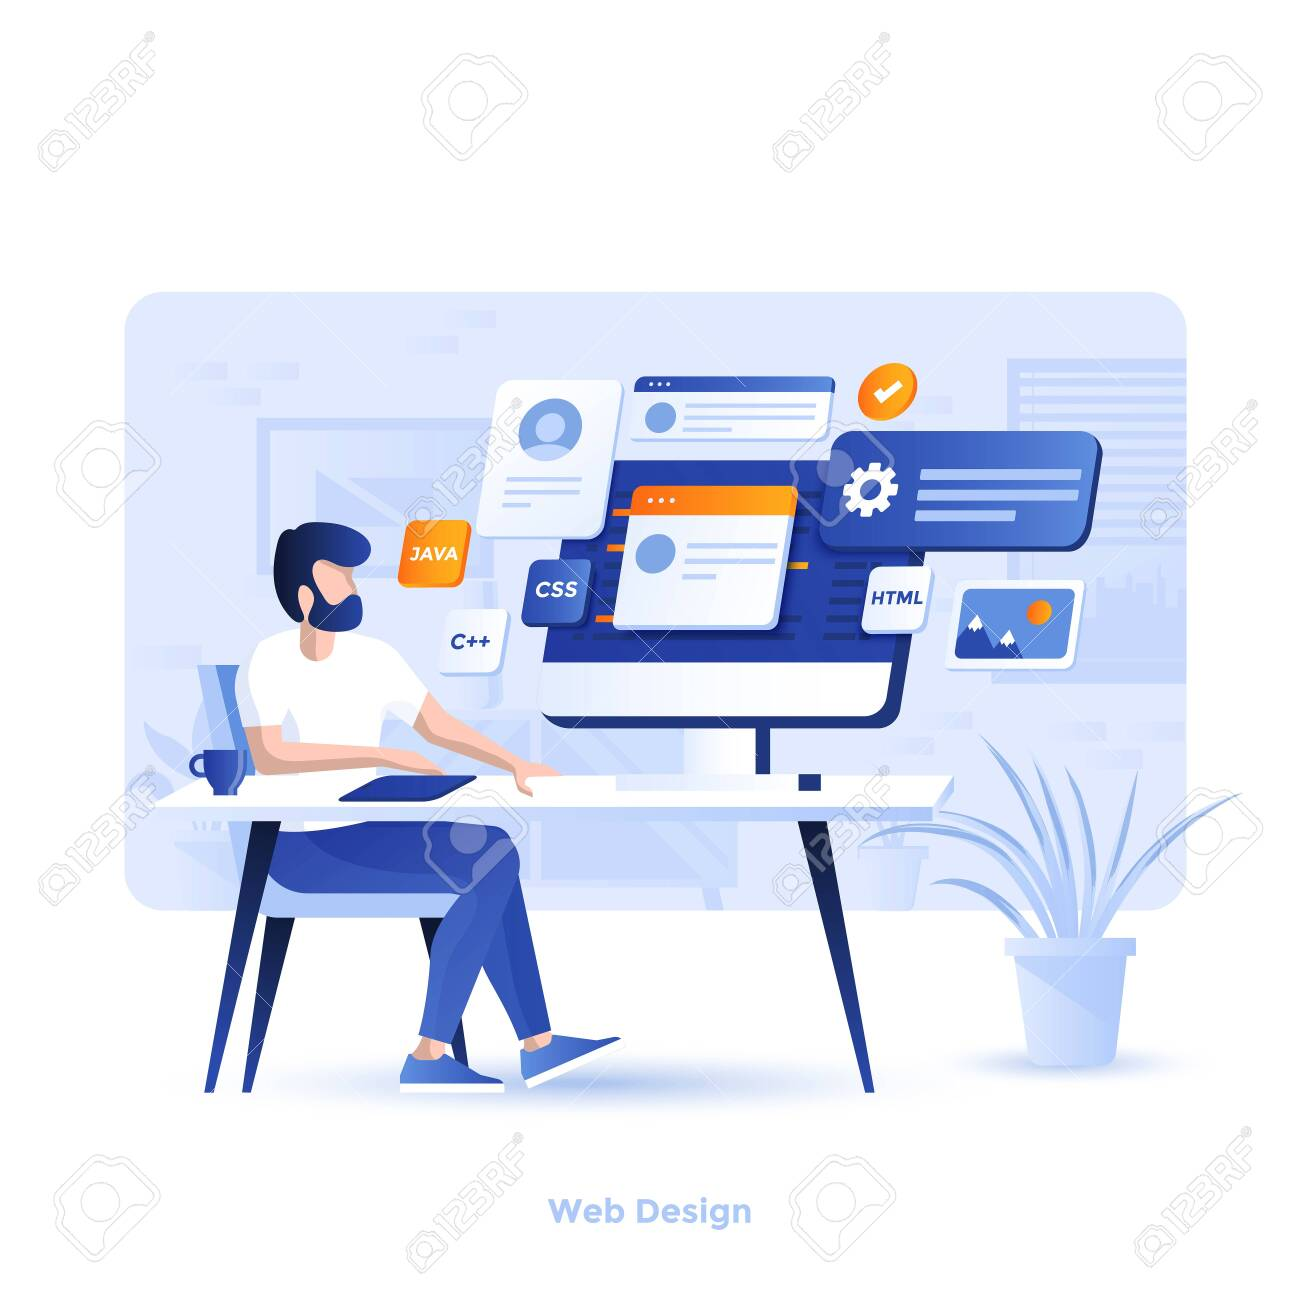 Modern flat design illustration of Web Design. Can be used for website and mobile website or Landing page. Easy to edit and customize. Vector illustration - 134806566